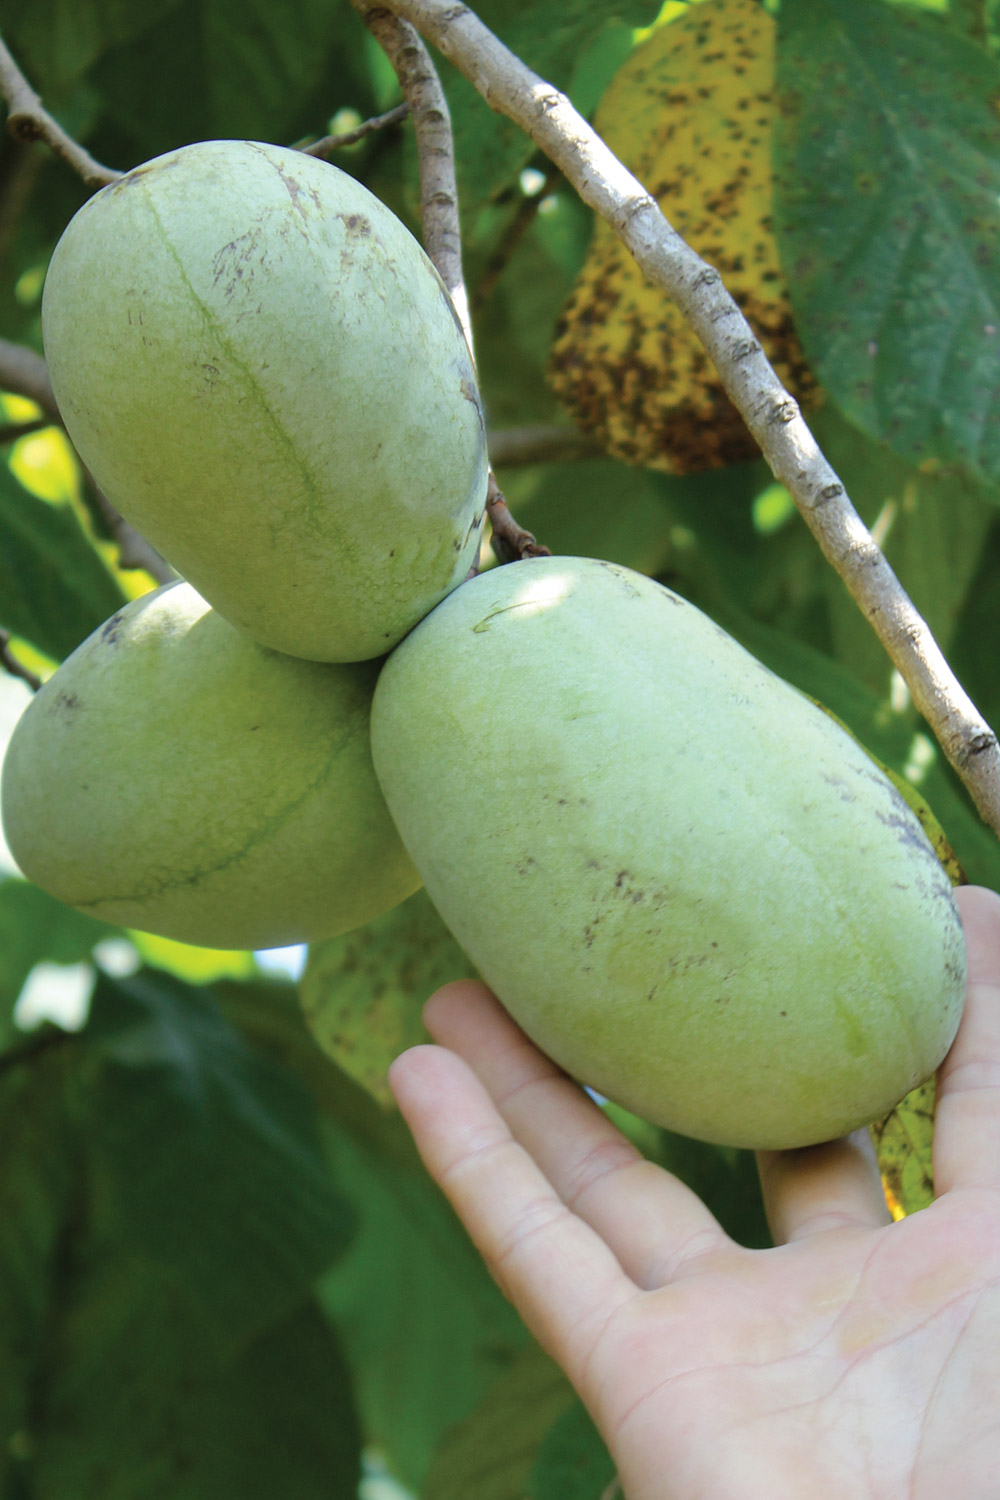 Picking pawpaws off the tree, minty green fruits that fit easily in your hand.